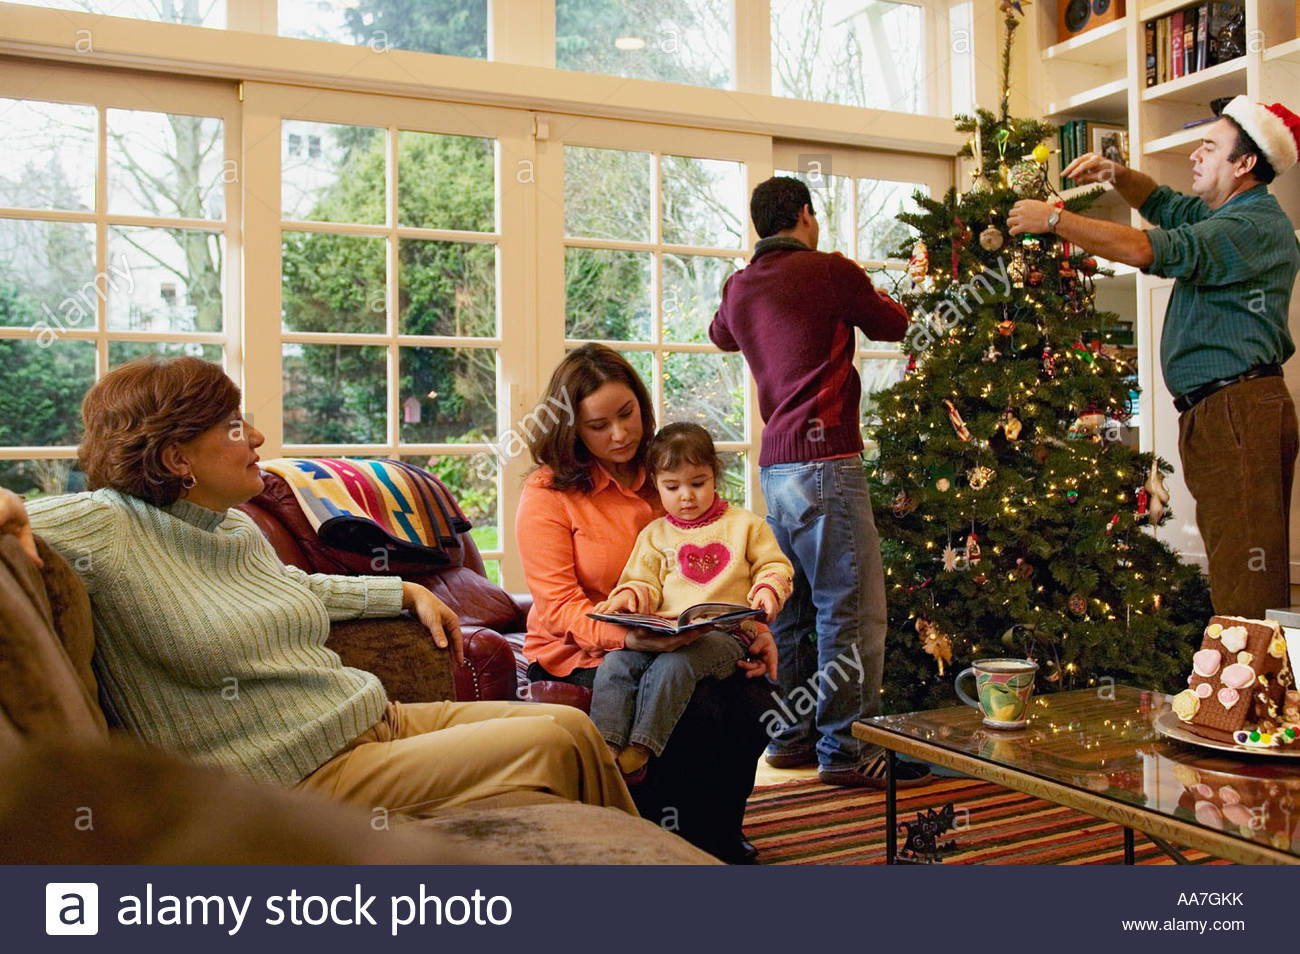 Christmas Tree Inside House Window Stock Photos